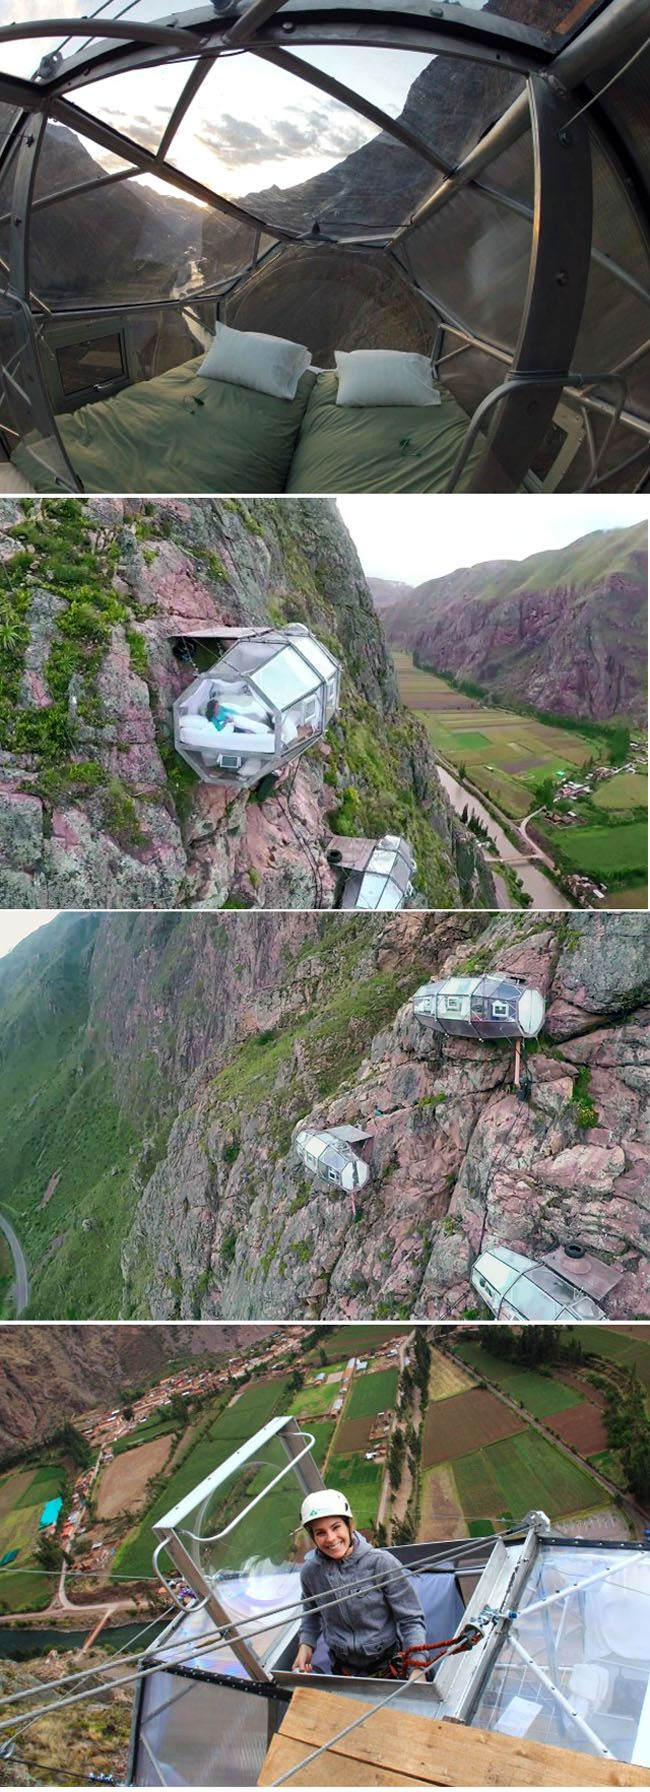 Peru - Hanging Hotel You Rock Climb Up to and Zip-line Down From… looks like so much fun!